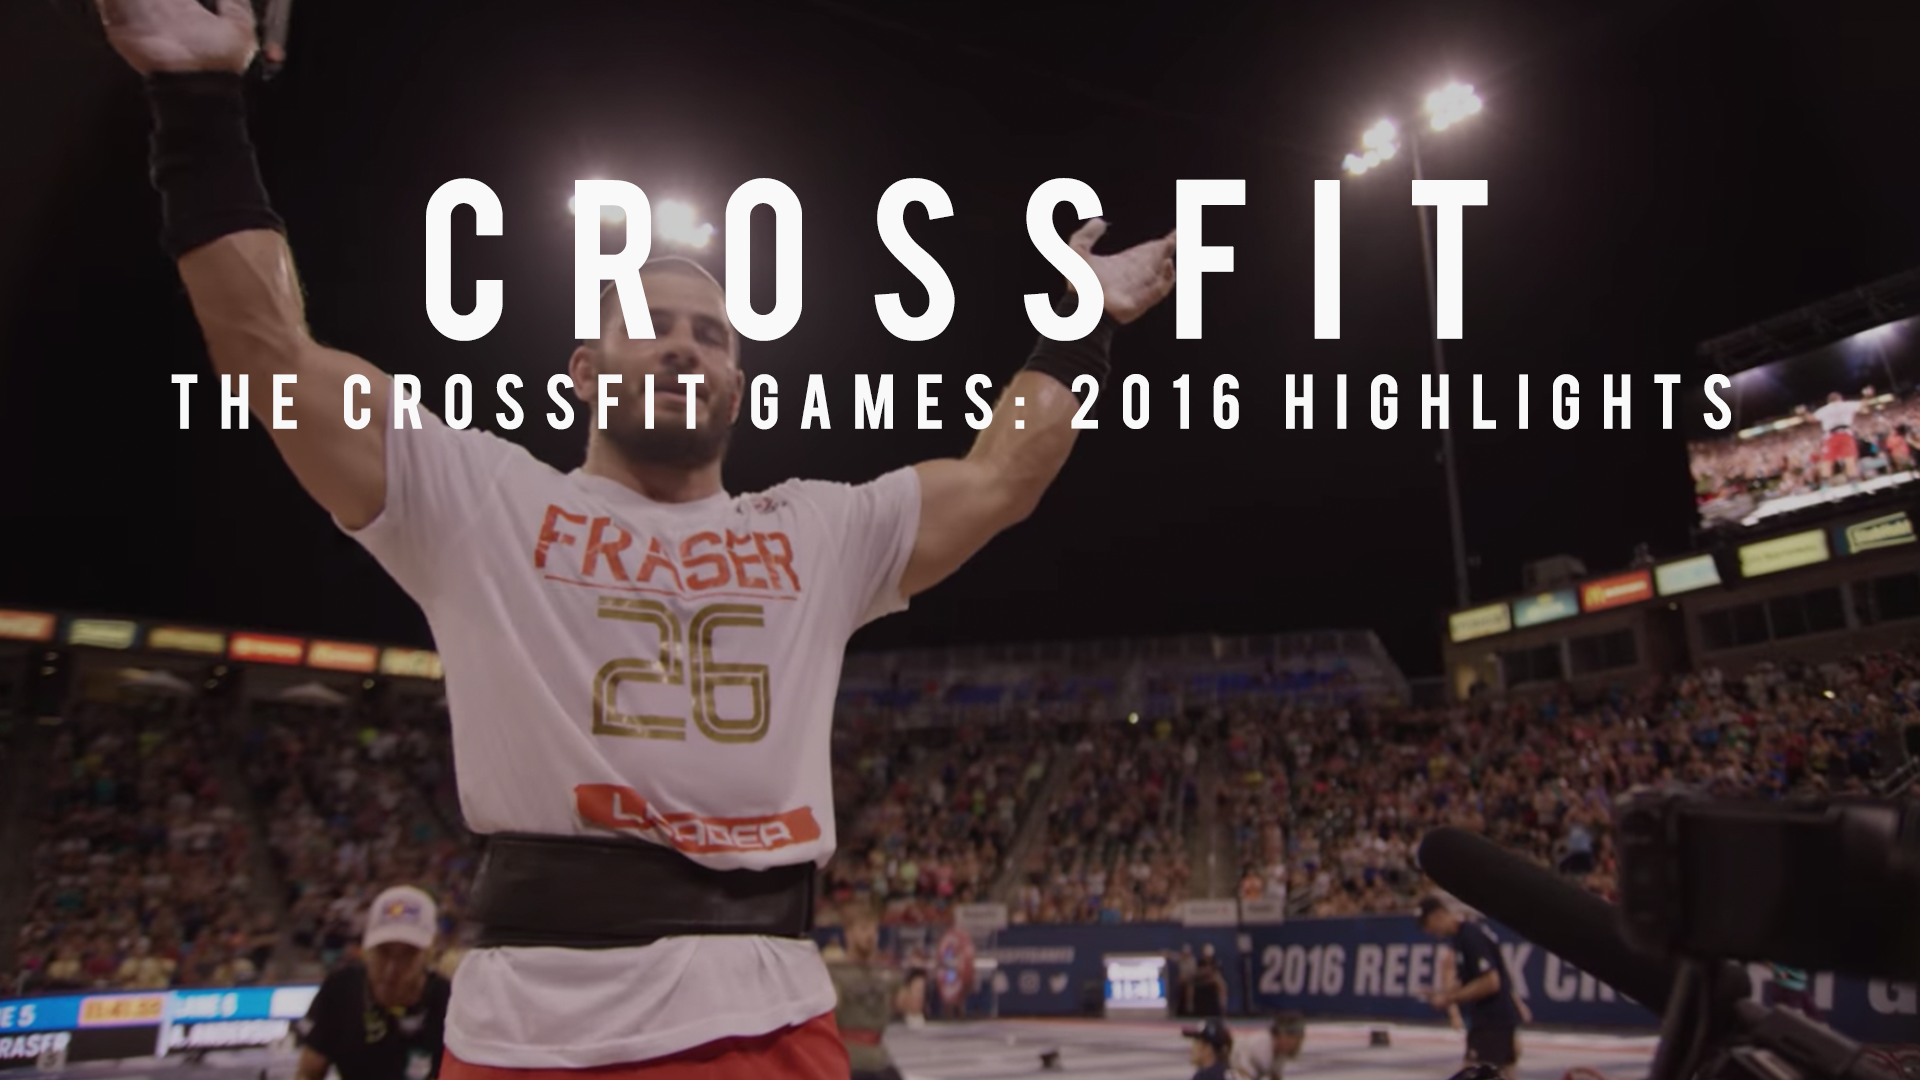 The CrossFit Games: 2016 Highlights Michael McCoy Videography